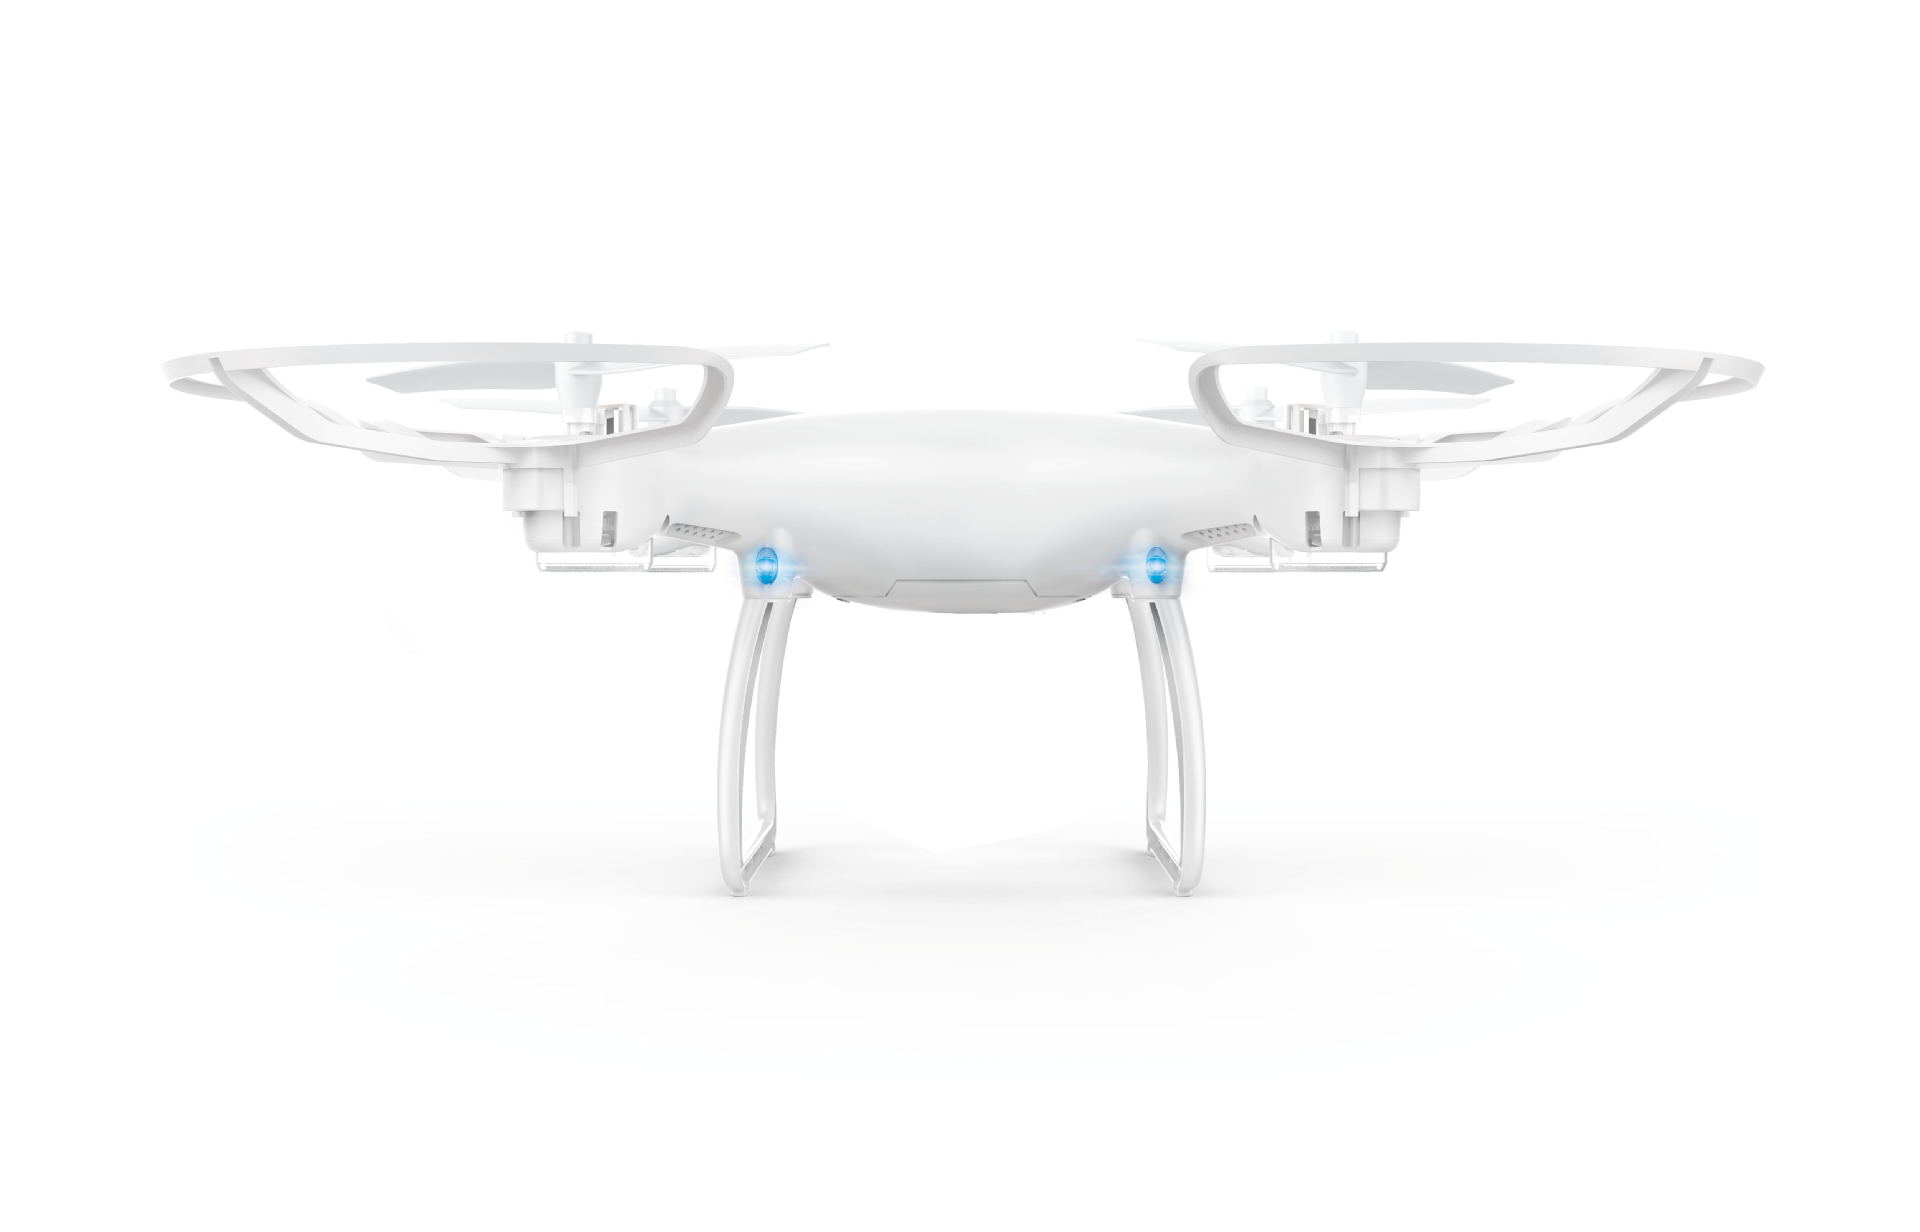 Li Huang Lh-x25 Aircraft 2.4G Quadcopter Remote Control Aircraft Drop-resistant Unmanned Aerial Vehicle Toy